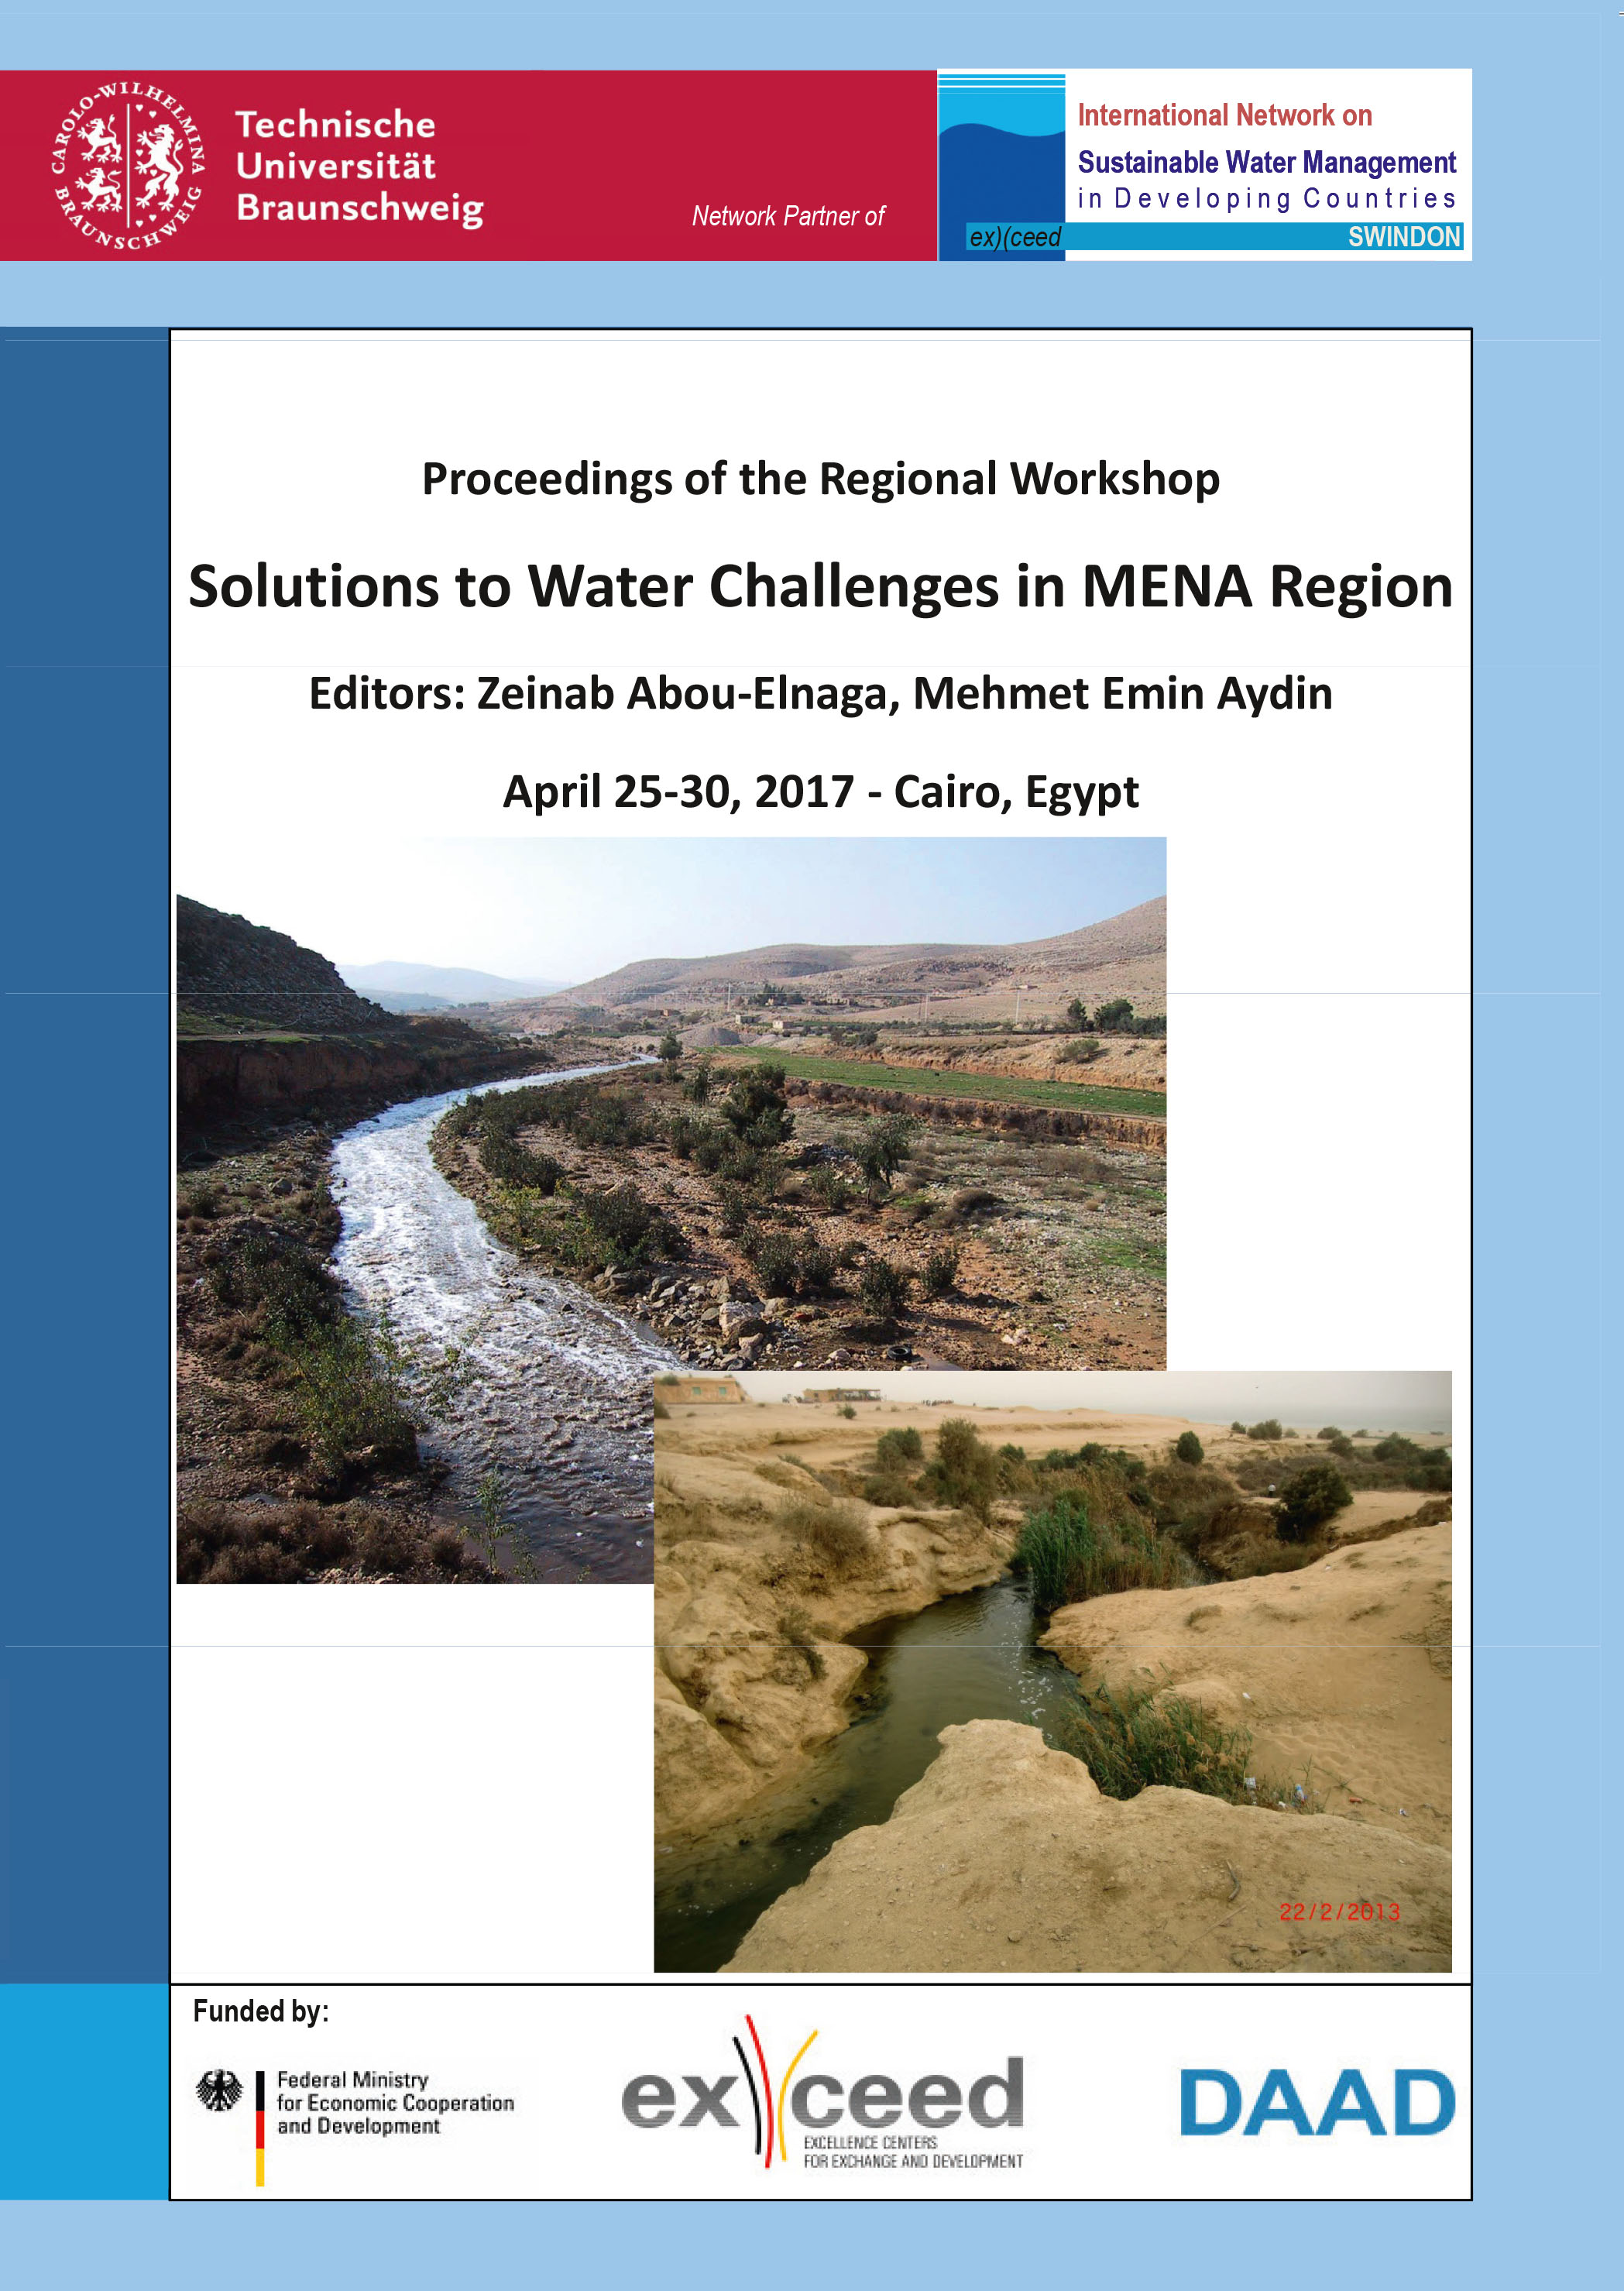 Solutions to Water Challenges in MENA Region